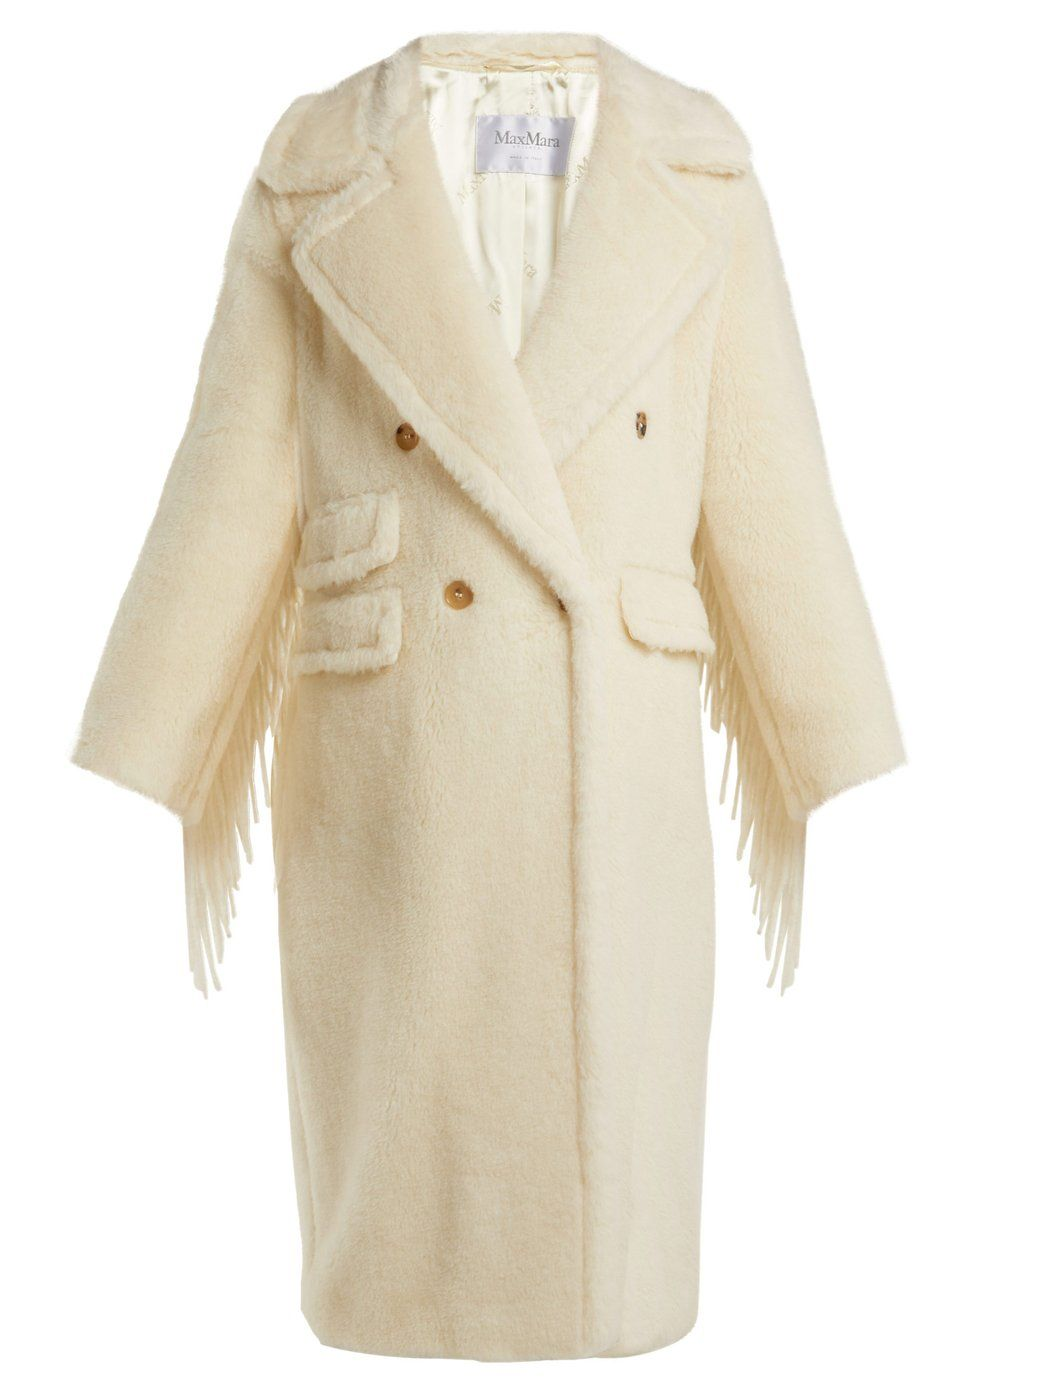 shop-max-mara-chieti-white-coat-teddy-bear